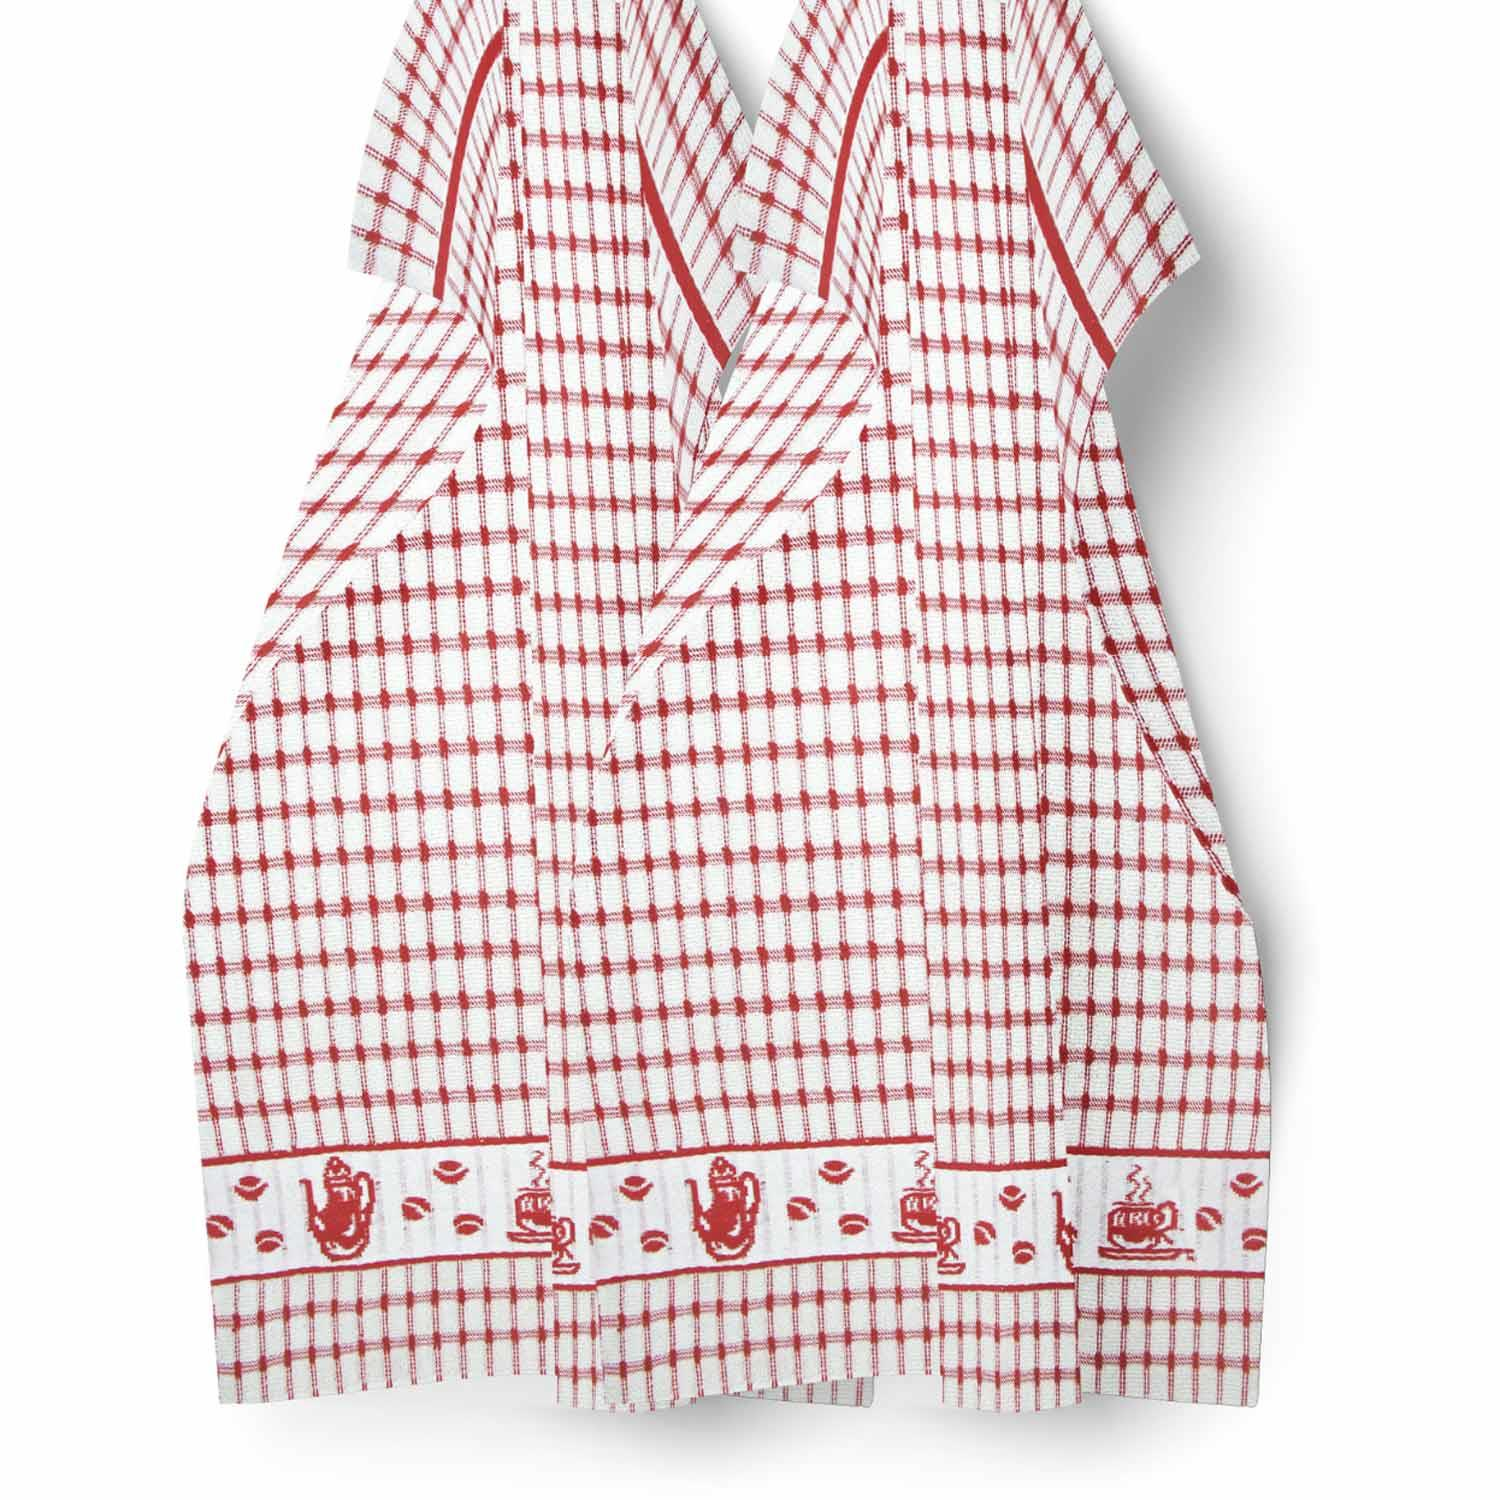 Packs-of-2-4-6-12-Tea-Towels-100-Cotton-Terry-Kitchen-Dish-Drying-Towel-Sets thumbnail 5